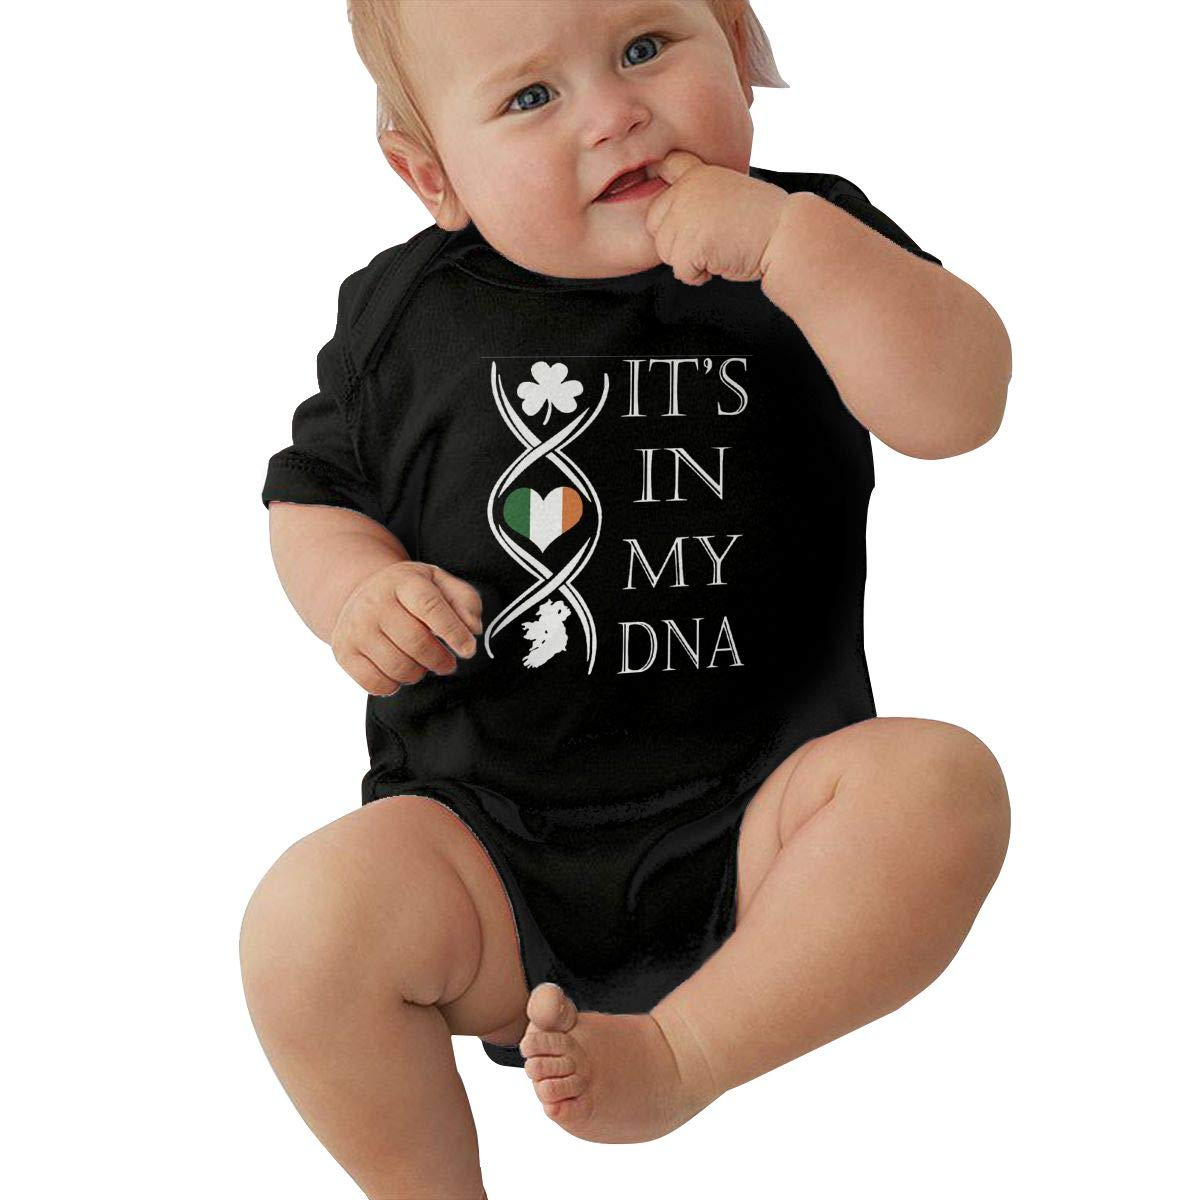 Infant Baby Girl Boy Its in My DNA Italia BodysuitRomper Jumpsuit Short Sleeved Bodysuit Tops Clothes